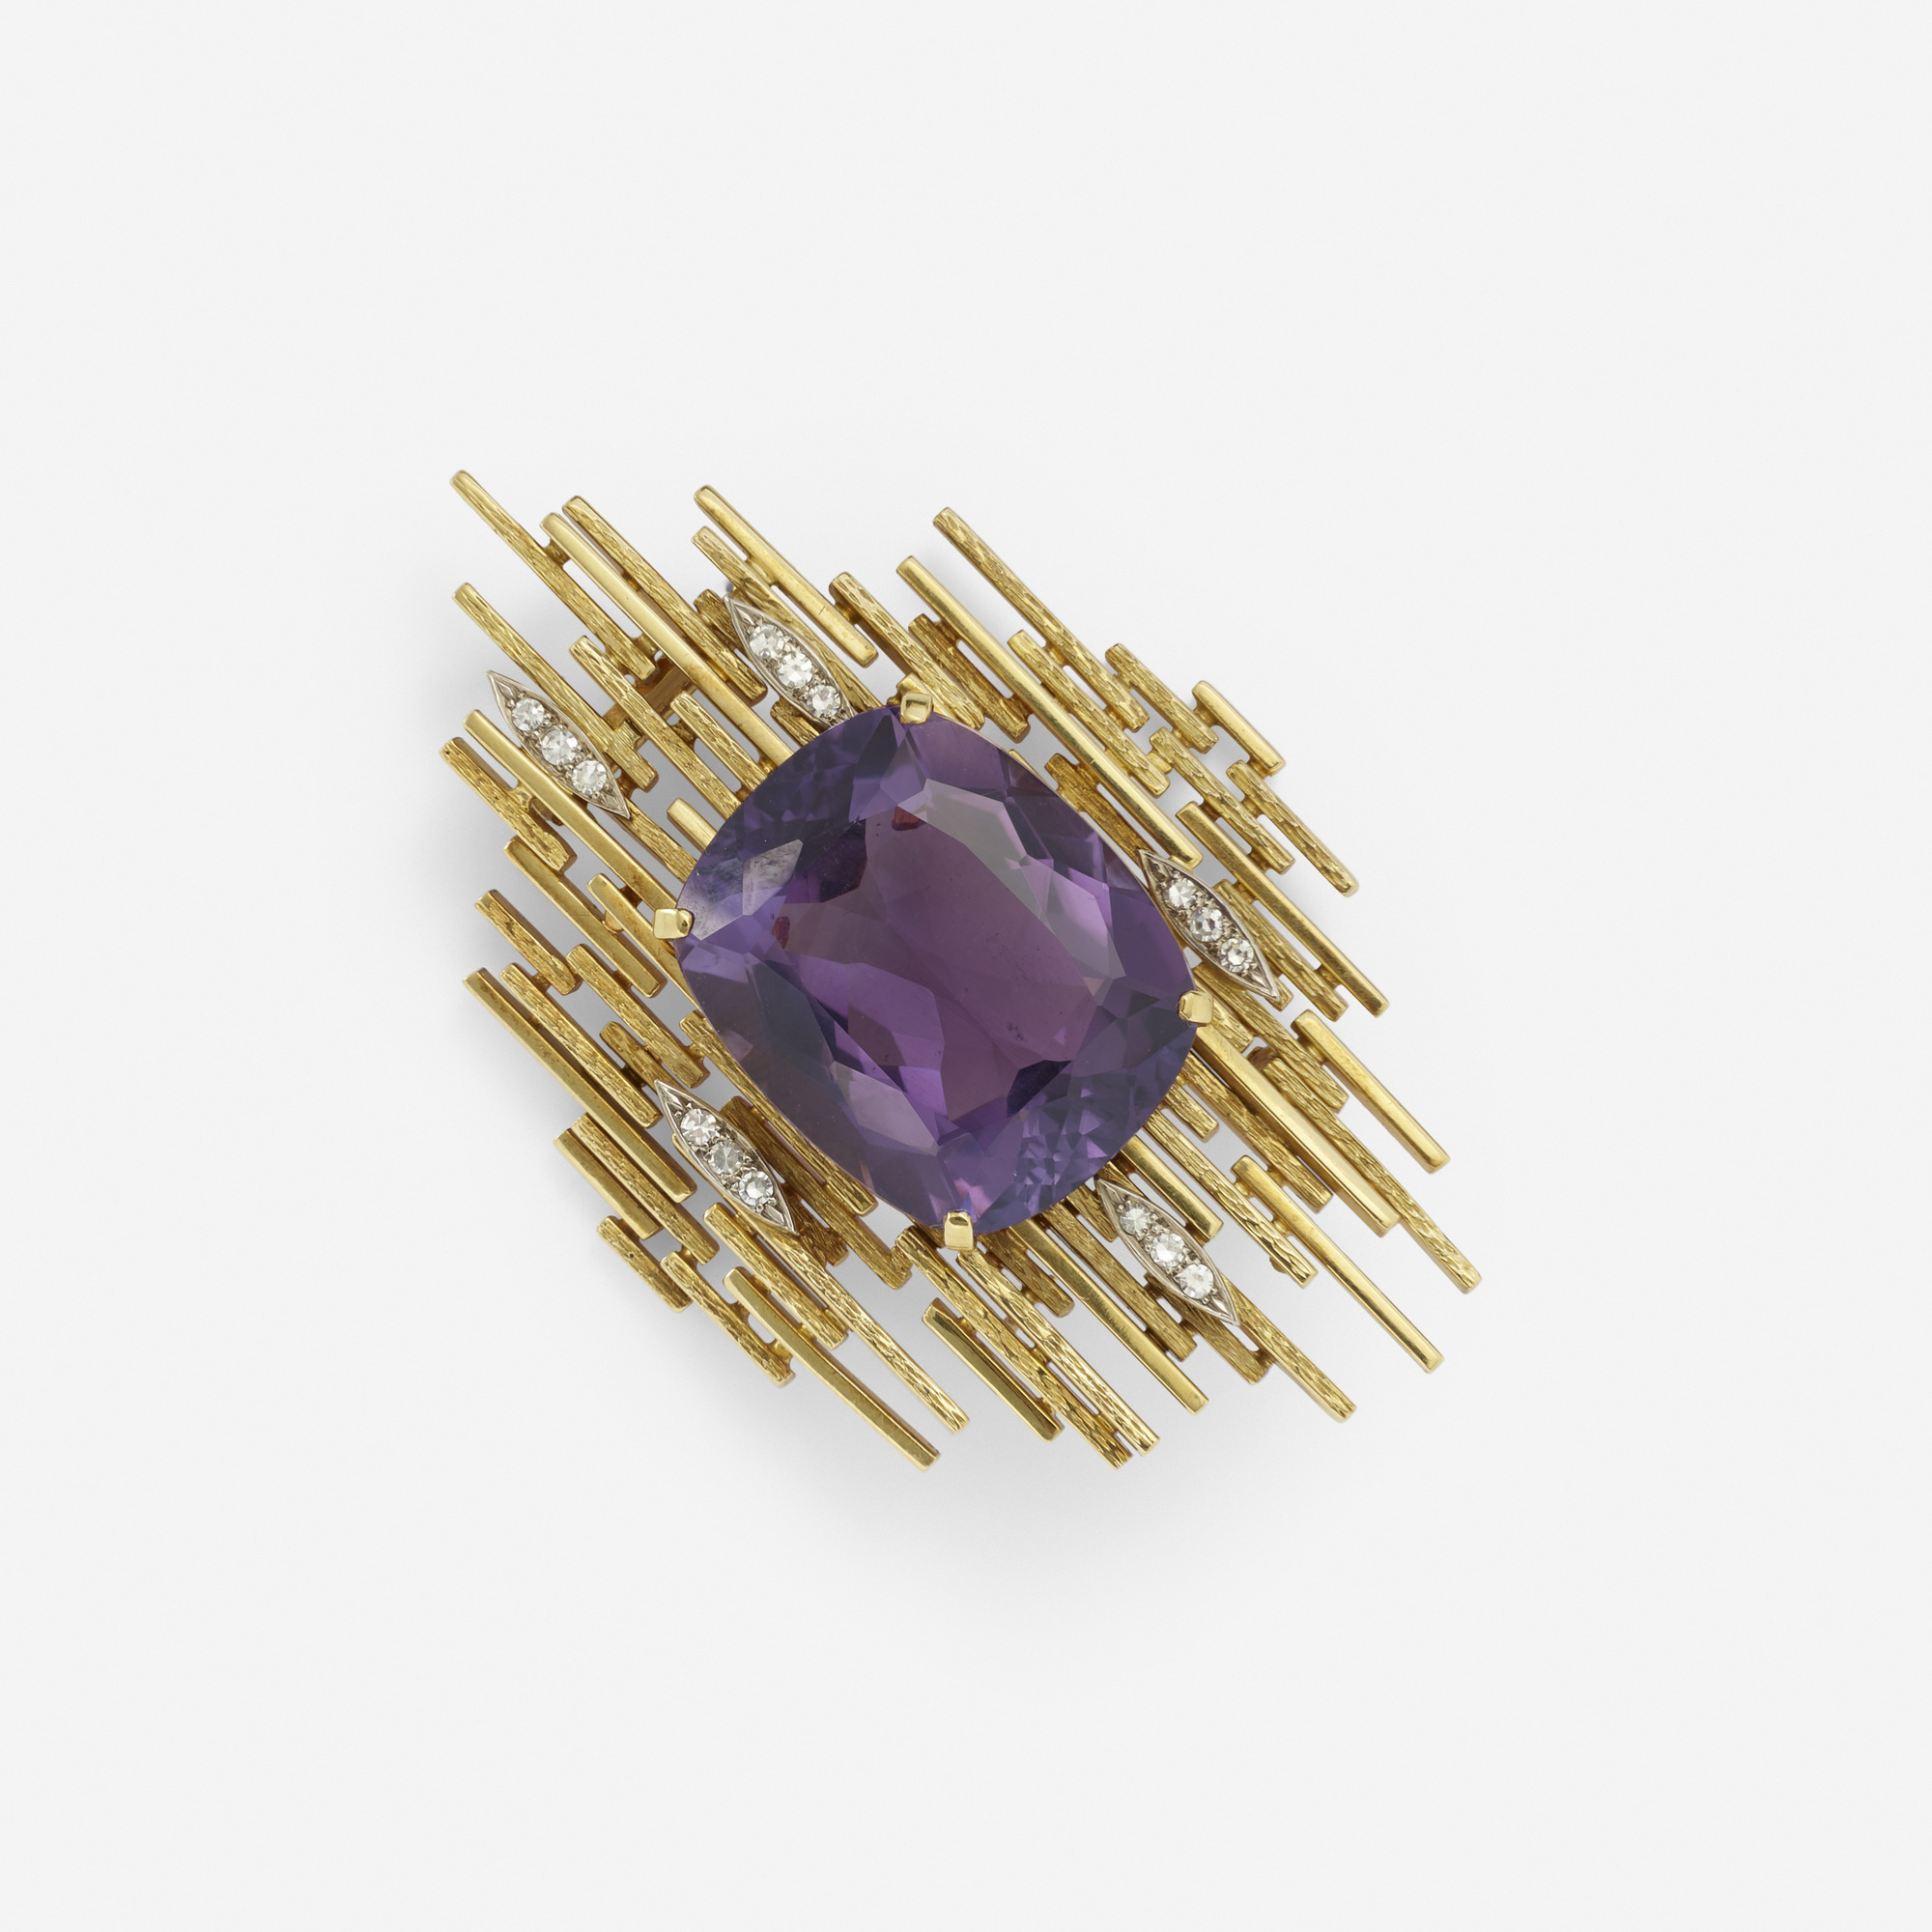 auctions a april gold amethyst stern jewels and auction brooch diamond of wright h